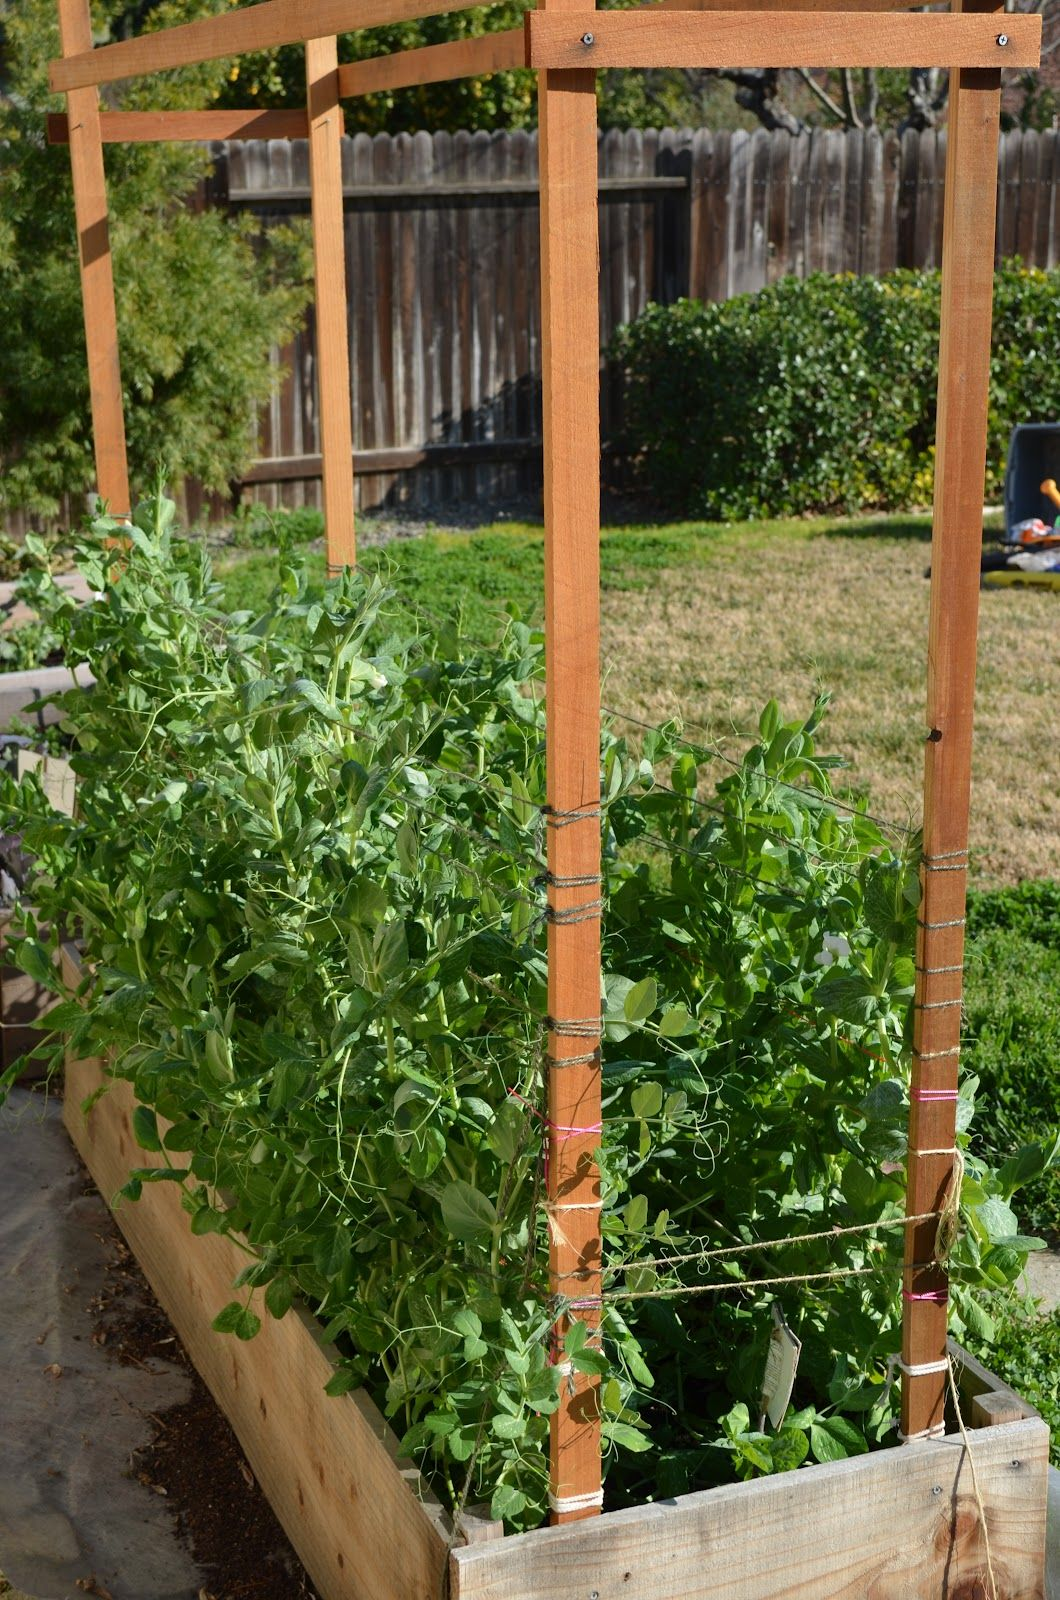 So this simple trellis held the weight of 32 snow pea plants. And ...